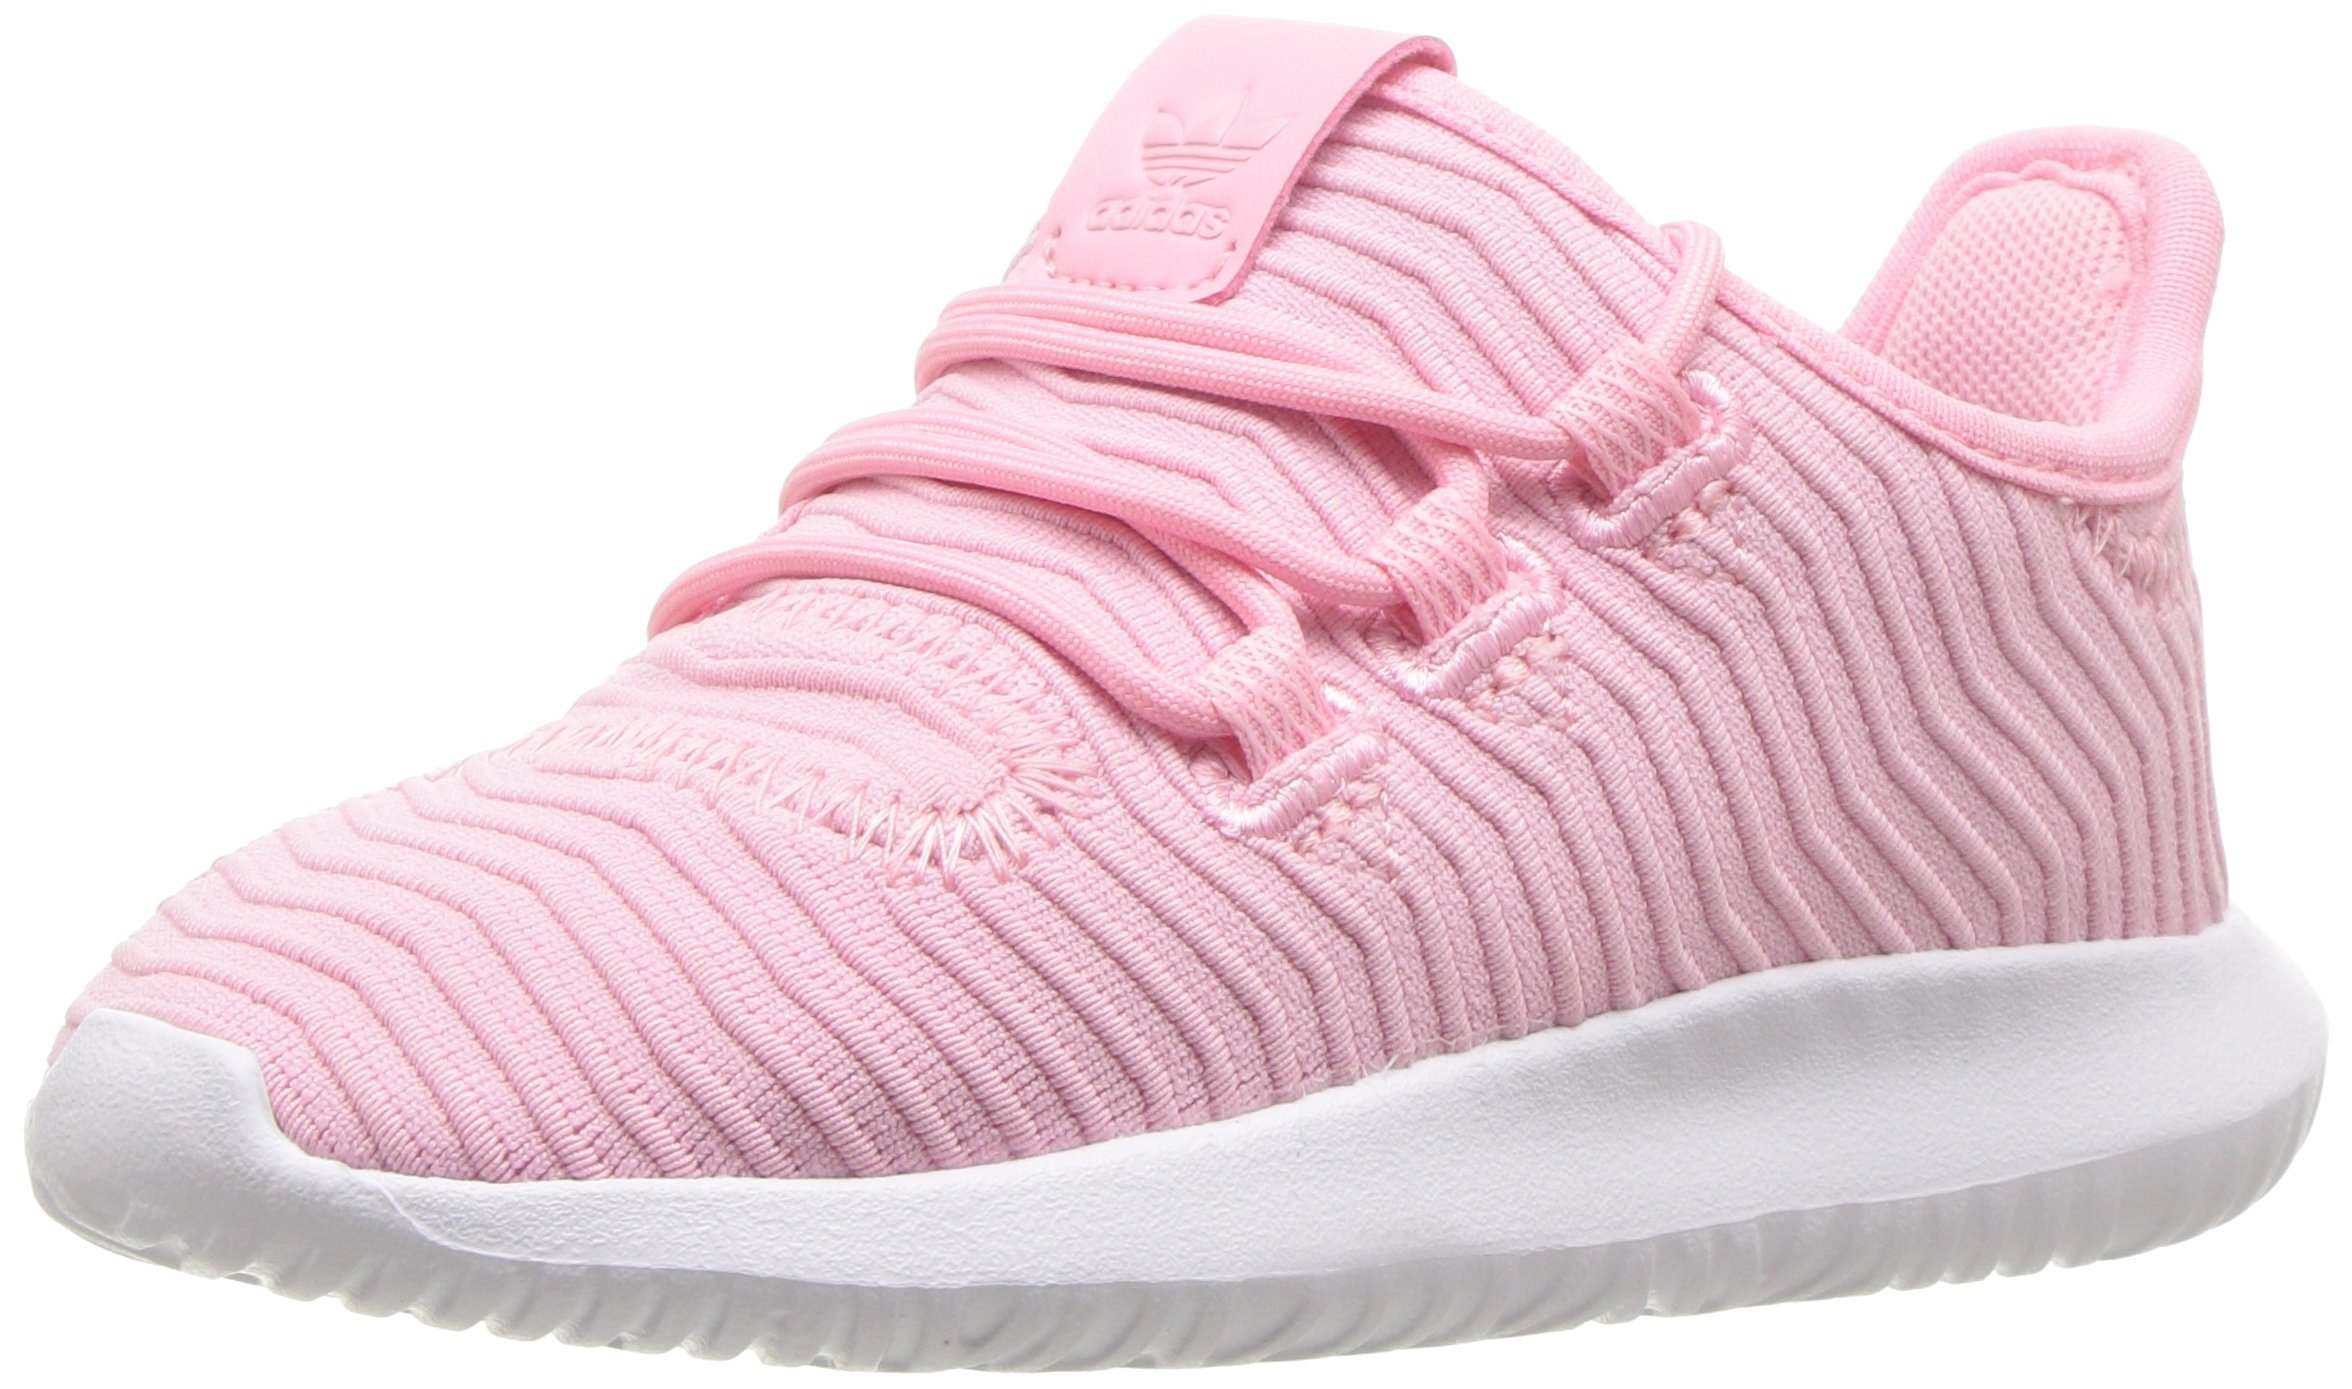 adidas Originals Baby Tubular Shadow Light Pink/White, 7K M US Toddler